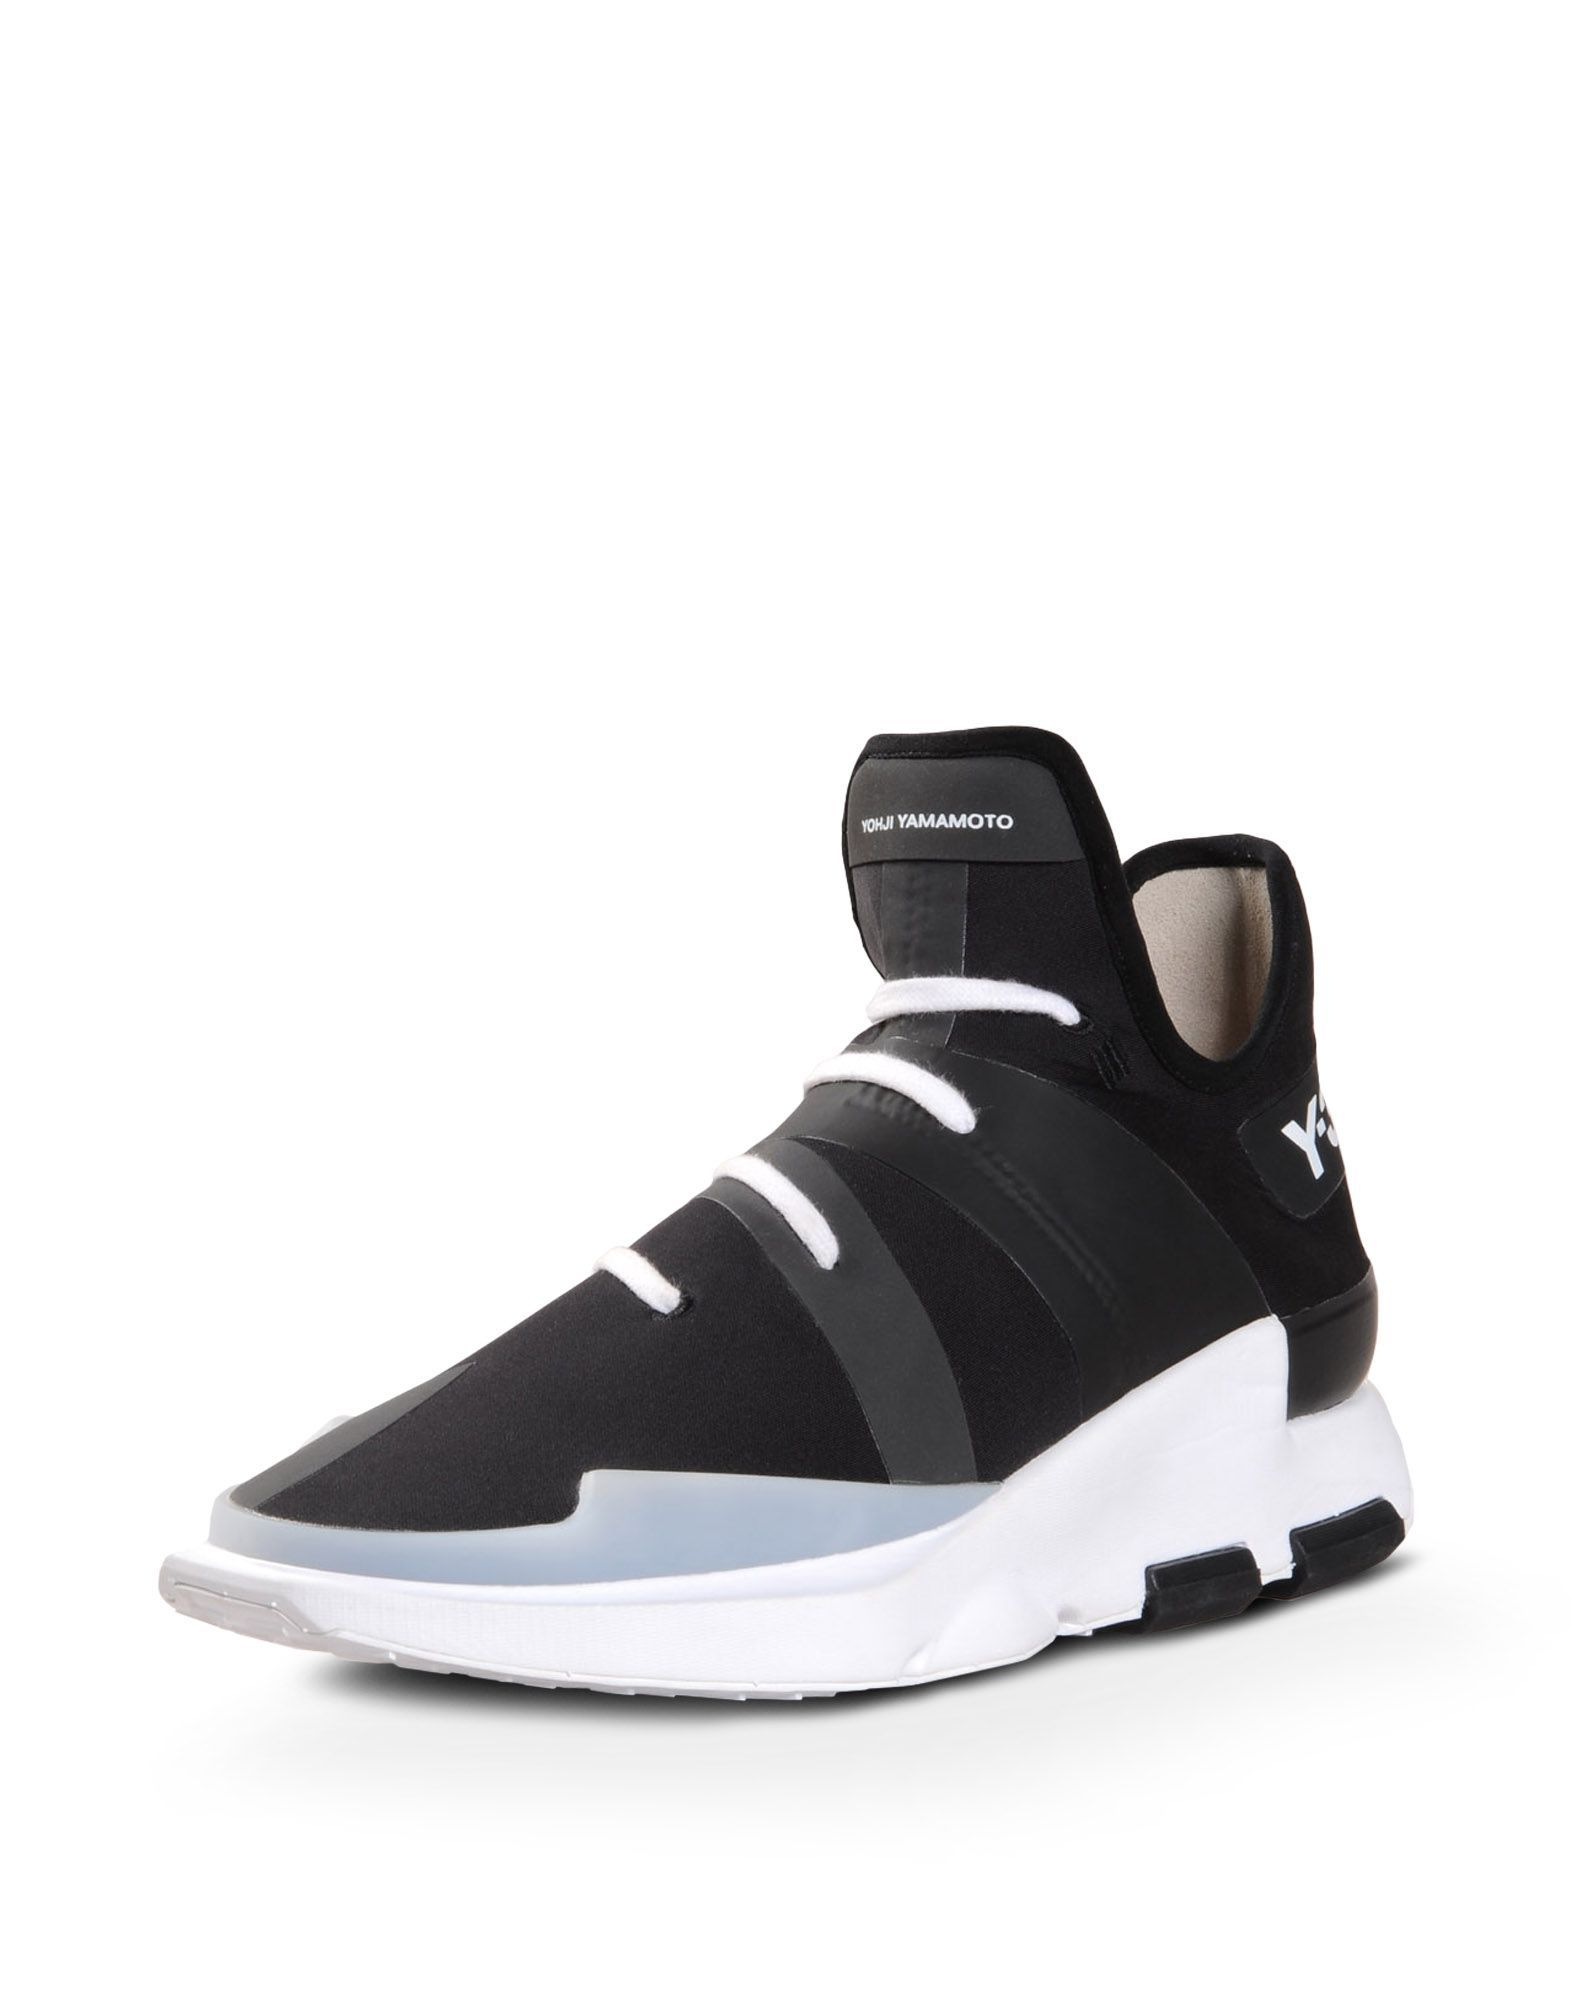 sale retailer f861b a00b2 Image result for y-3 noci low women Adidas Superstar, Adidas Originals,  Balenciaga